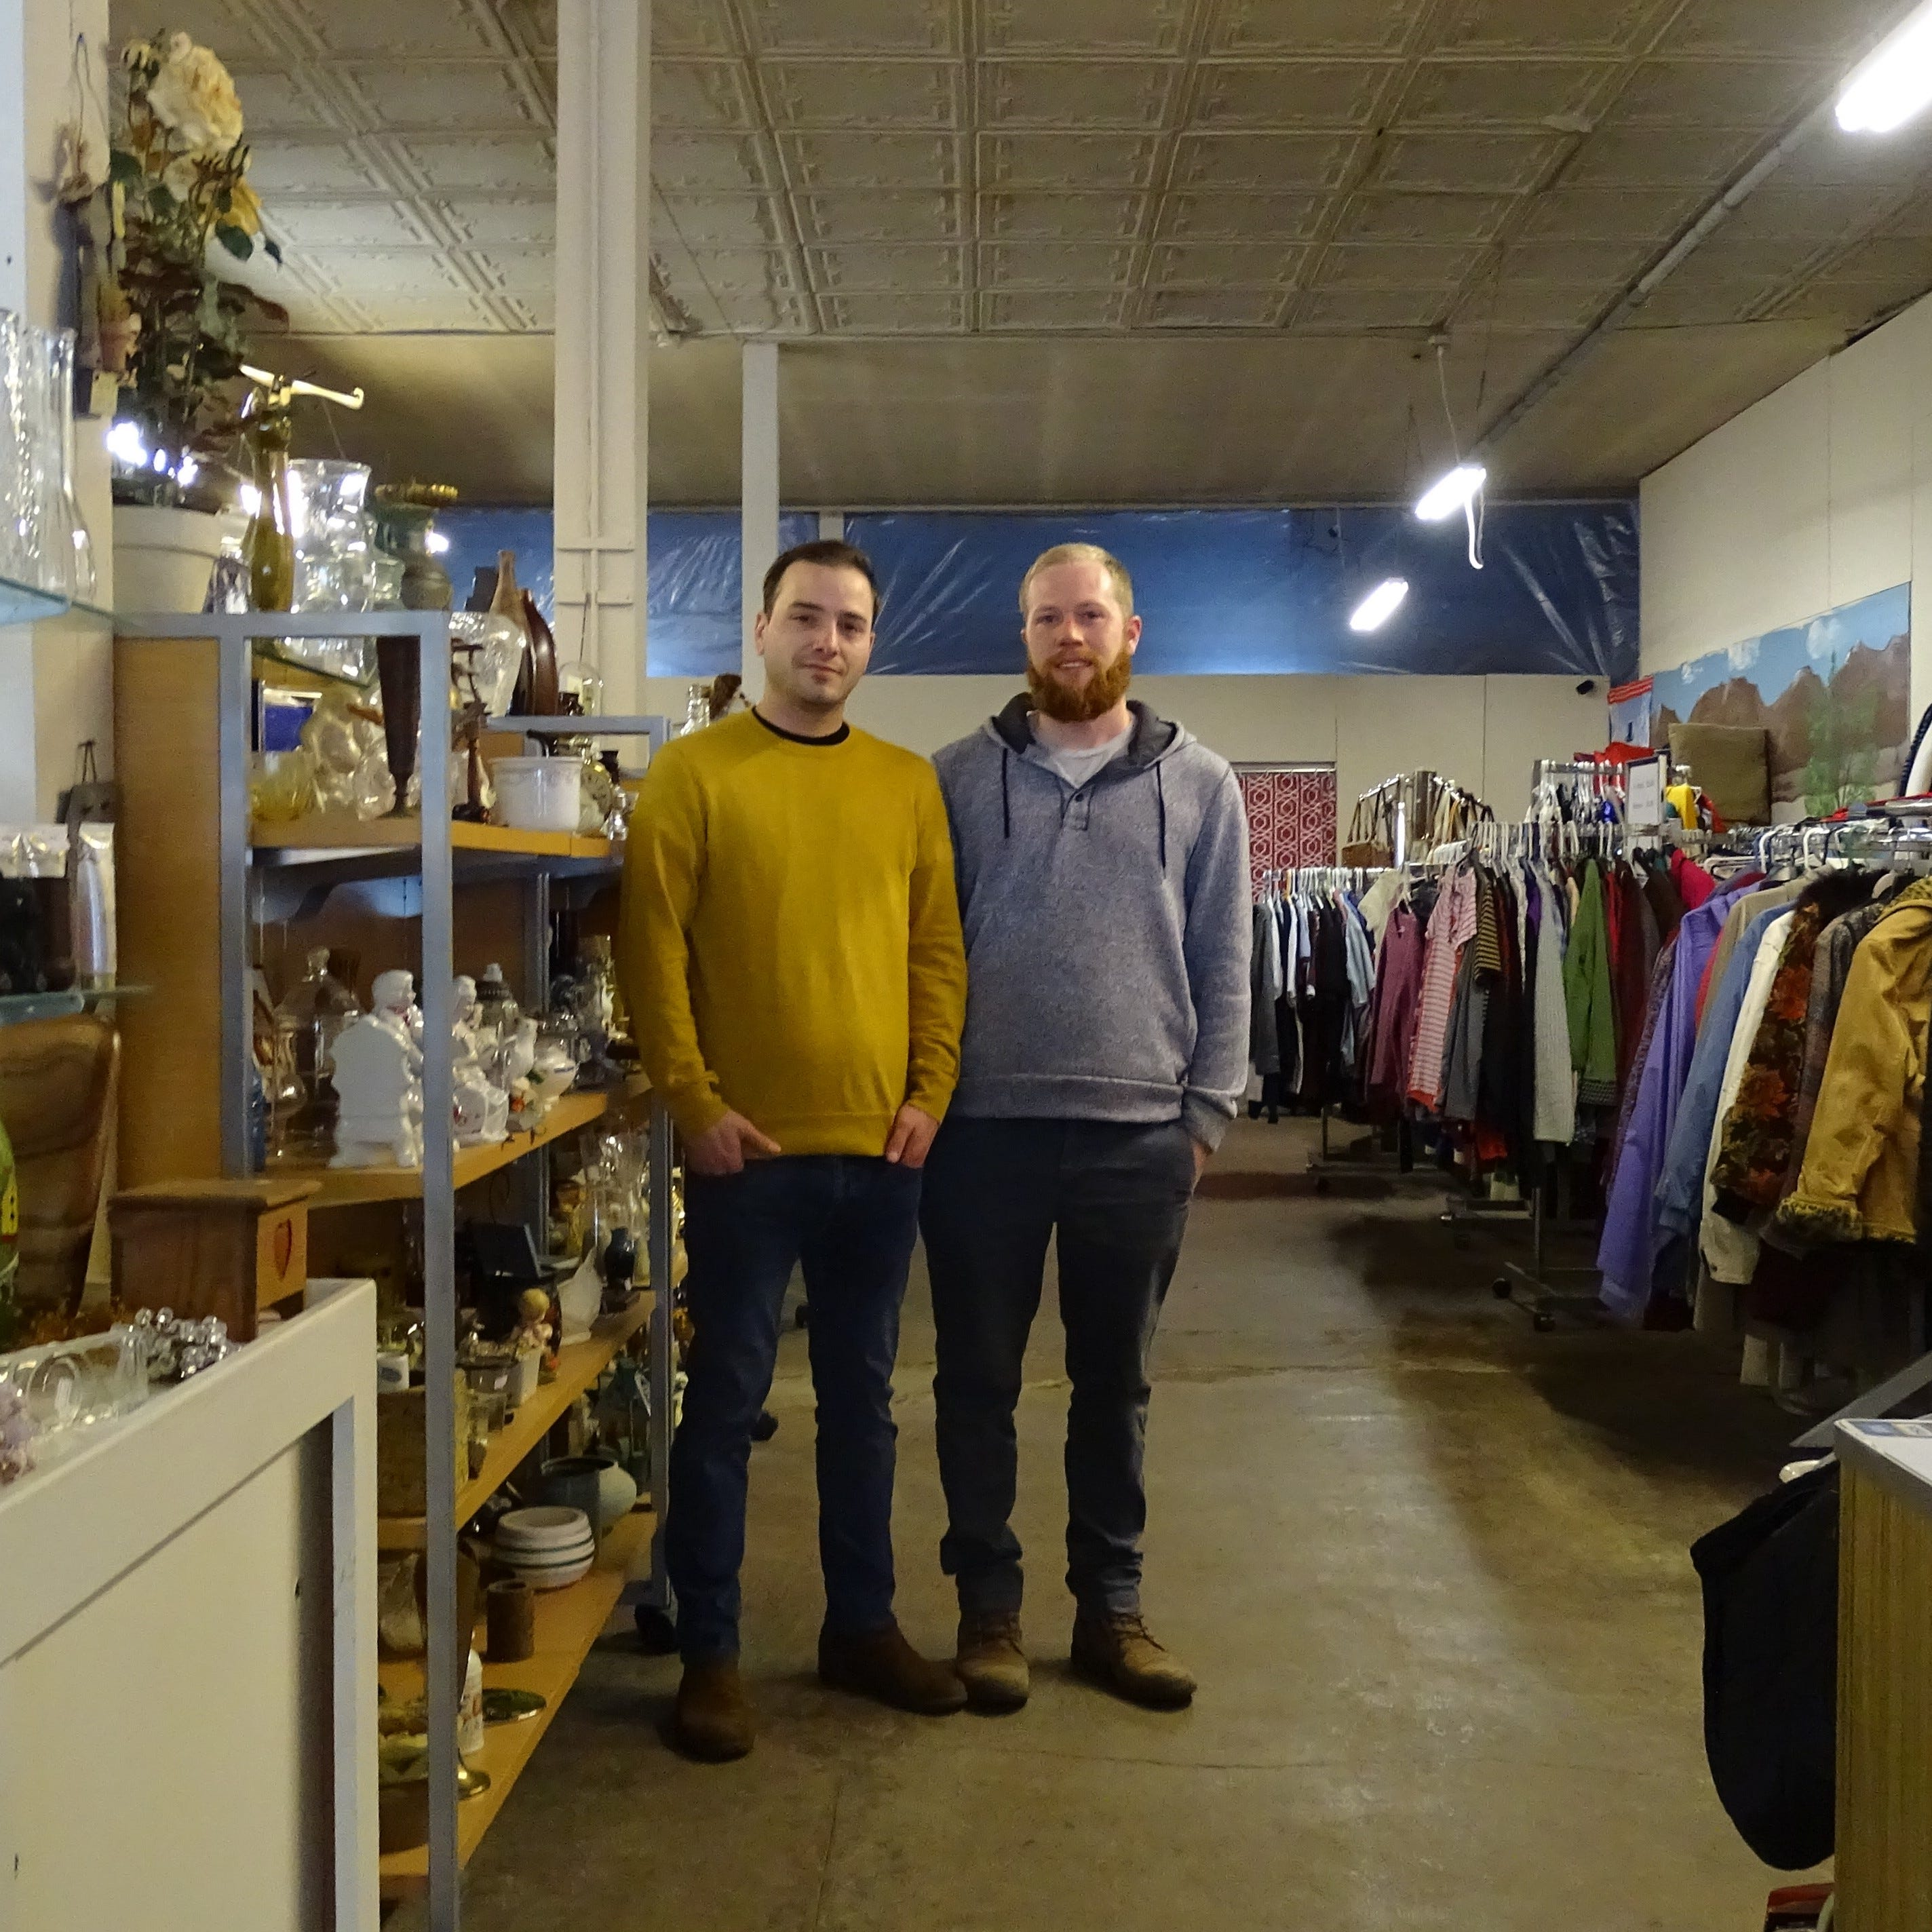 Small City Thrift owners saw a window of opportunity